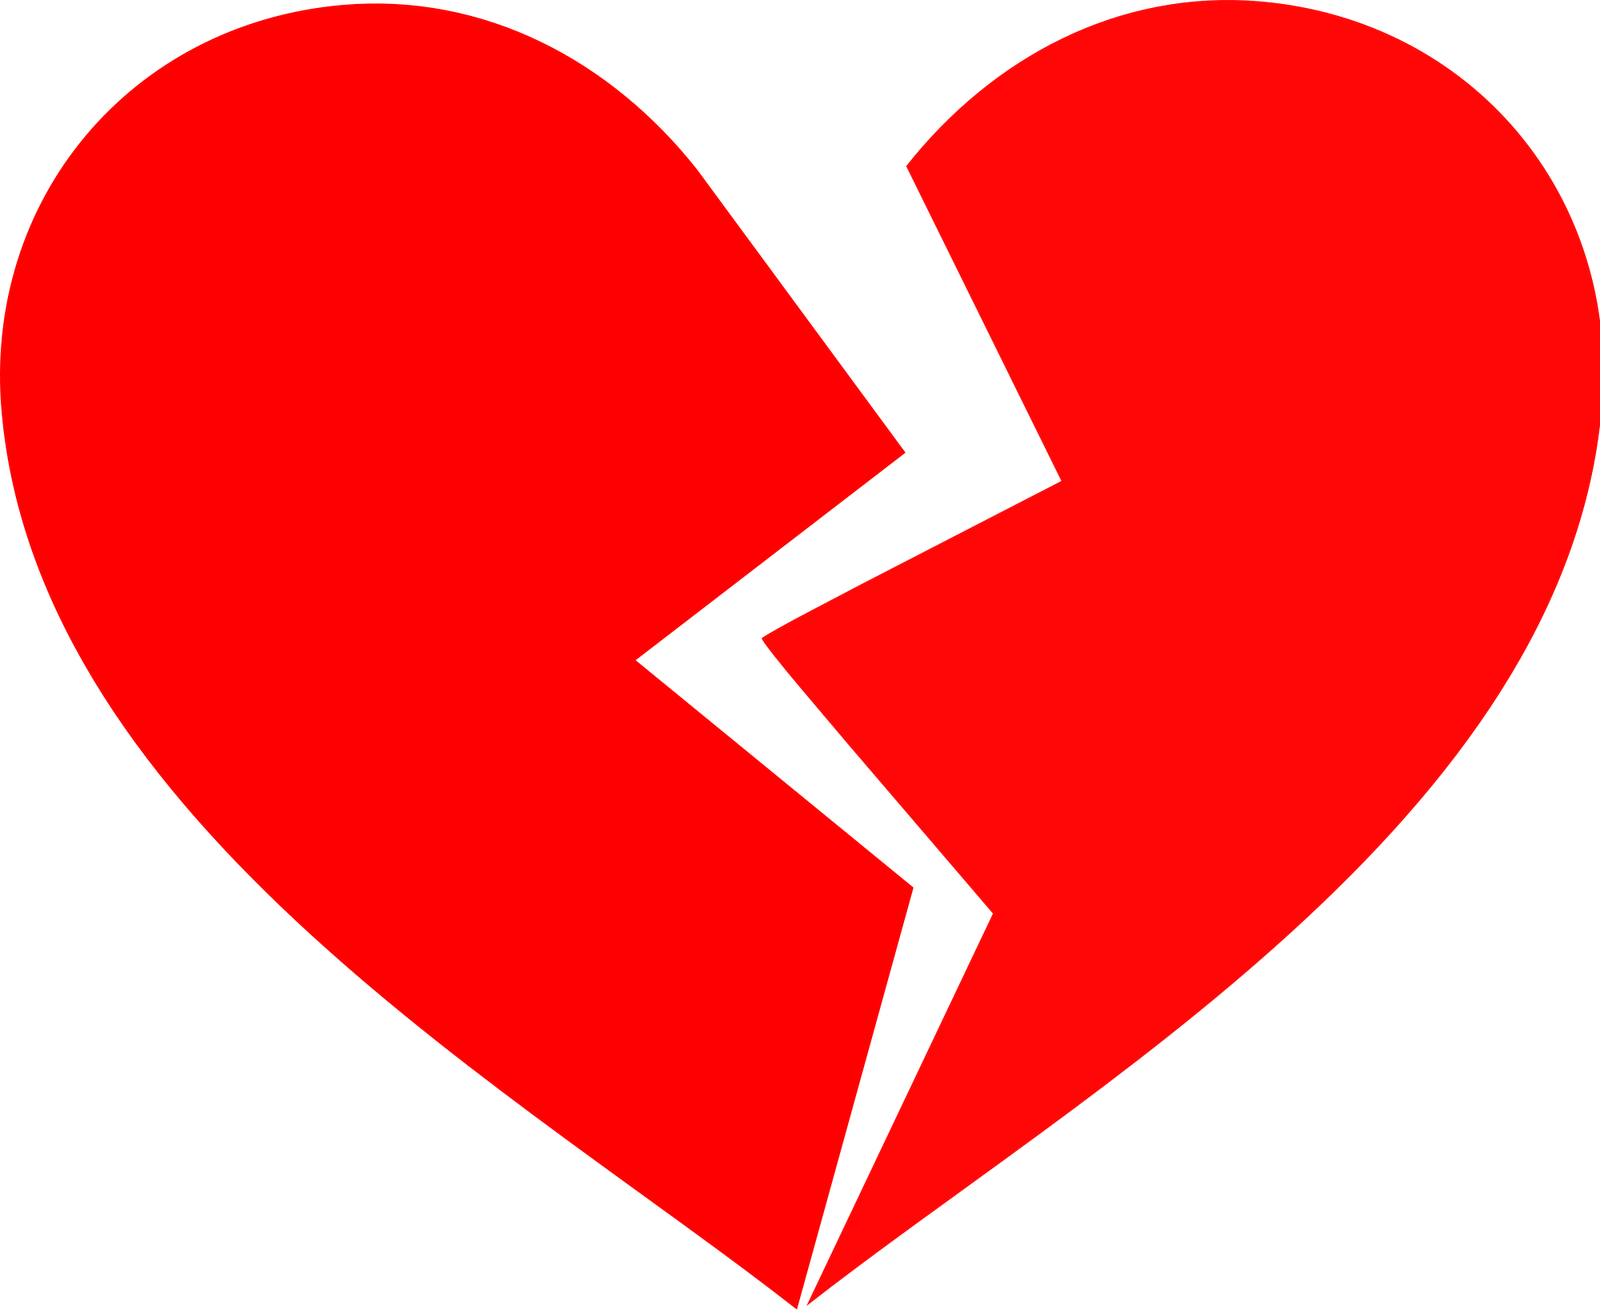 Is Heartbreak More Than Just An Emotion Siowfa16 Science In Our